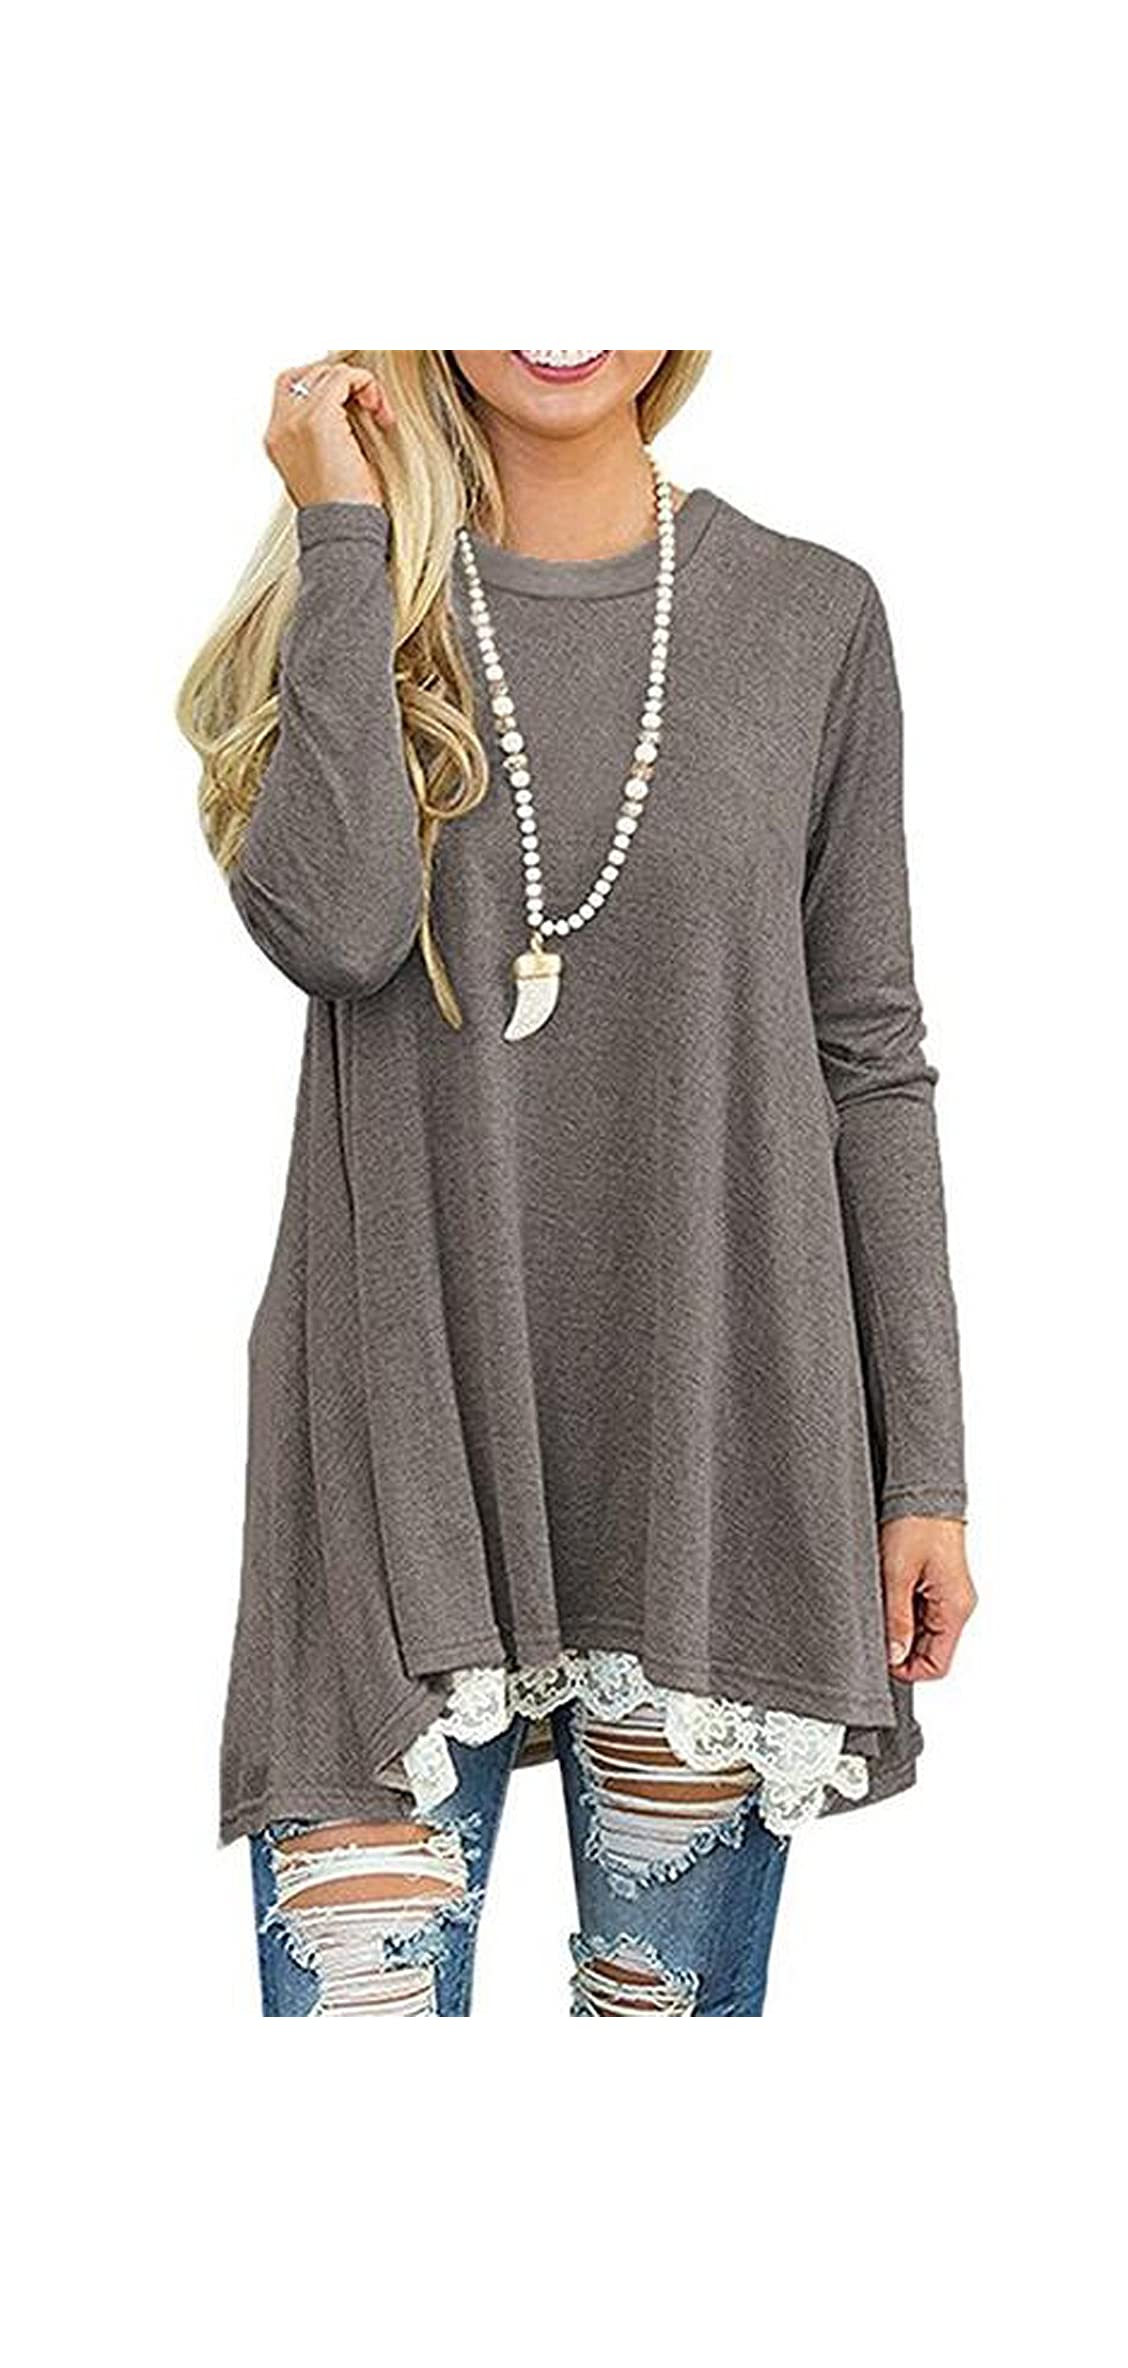 Women's Lace Long Sleeve Tops Casual Round Neck Top